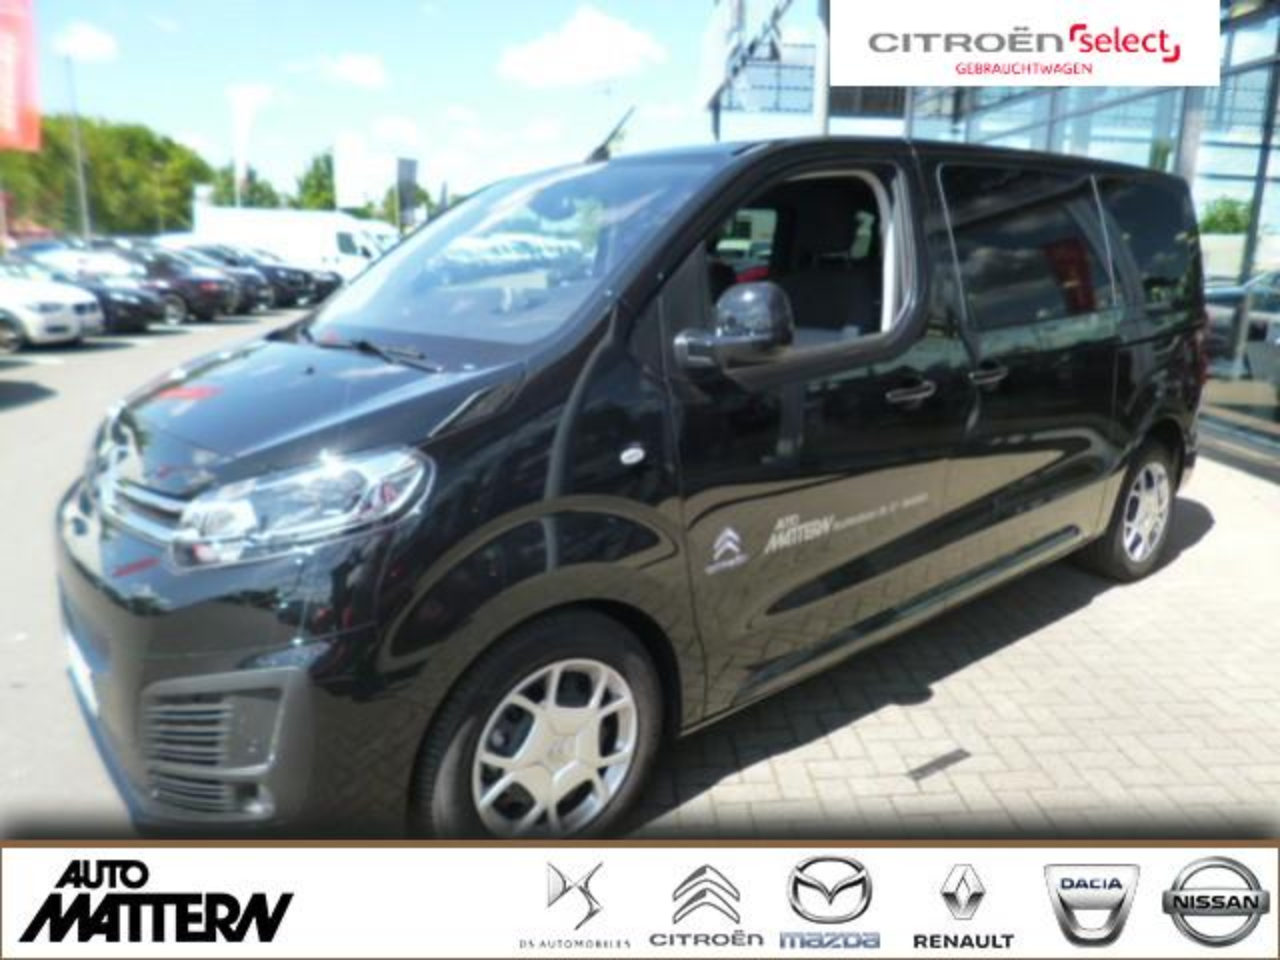 Citroën Jumpy Spacetourer Shine